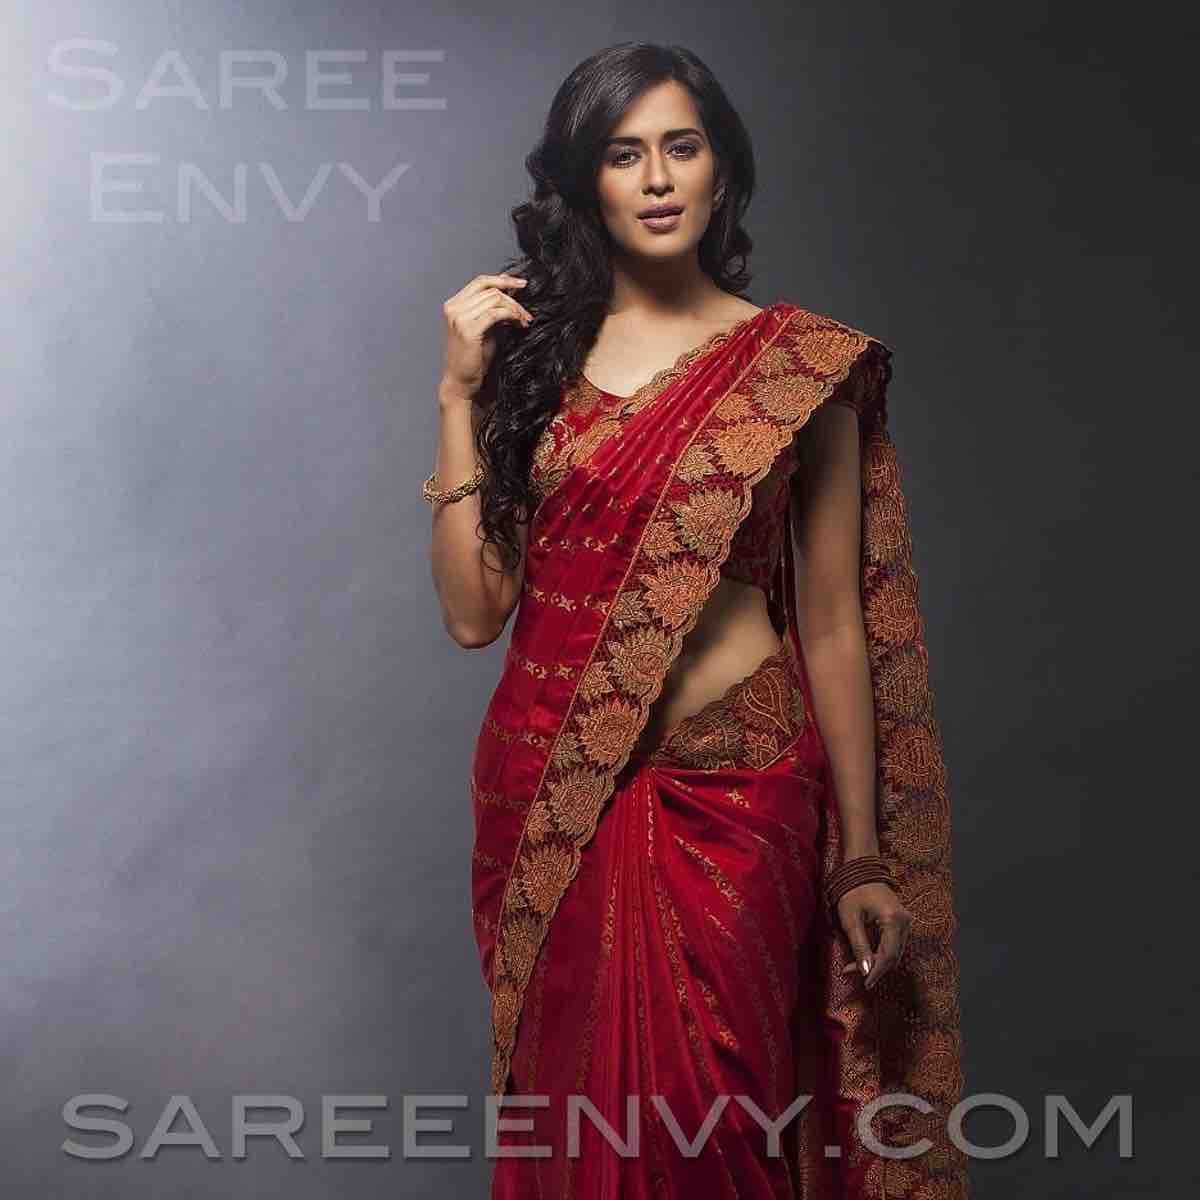 6ec8d30498 Saree Envy – Unique Designer High Quality Handcrafted Sarees